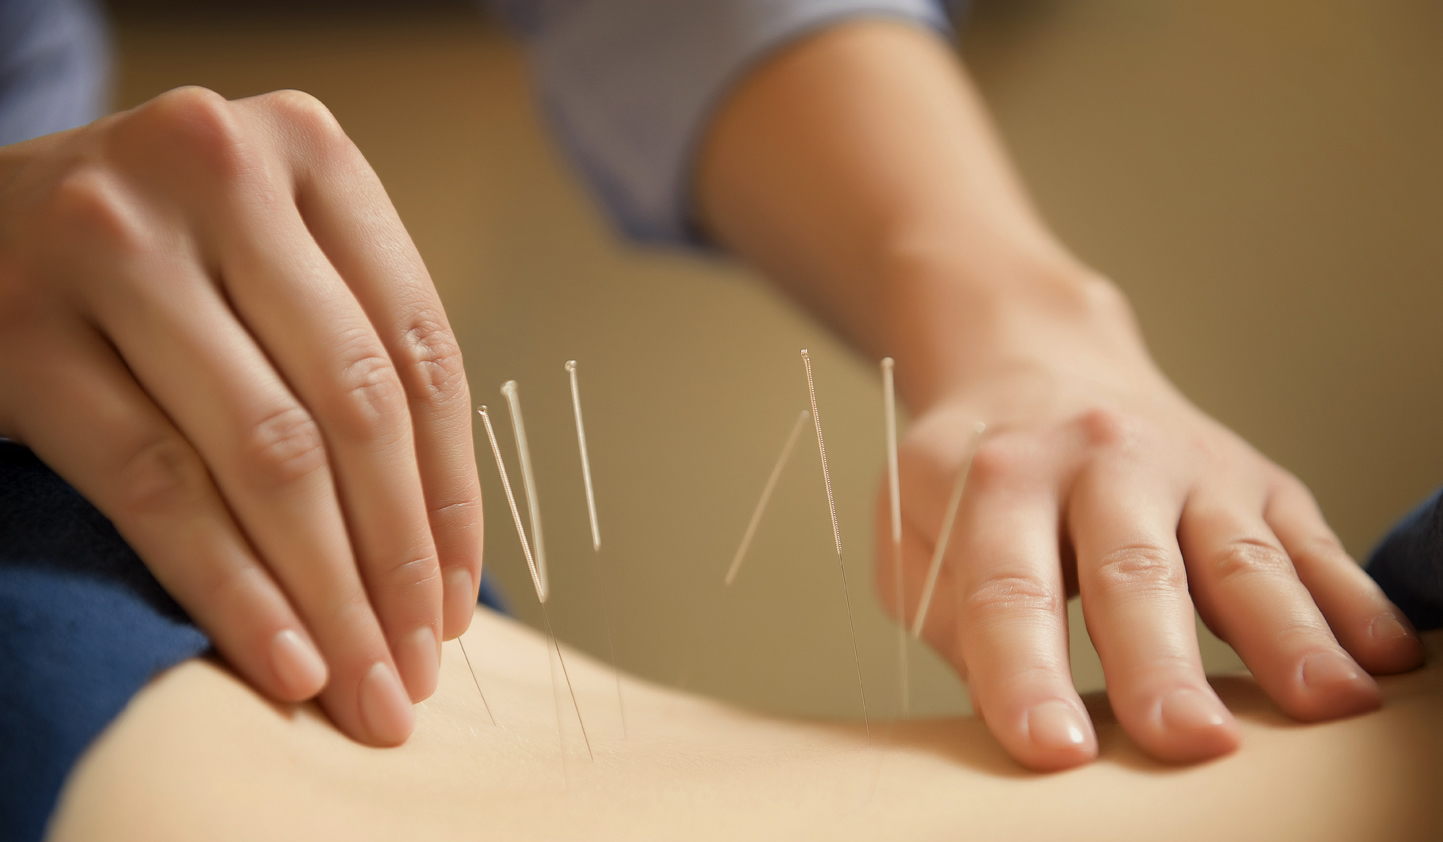 Learn All About Acupuncture In This Article